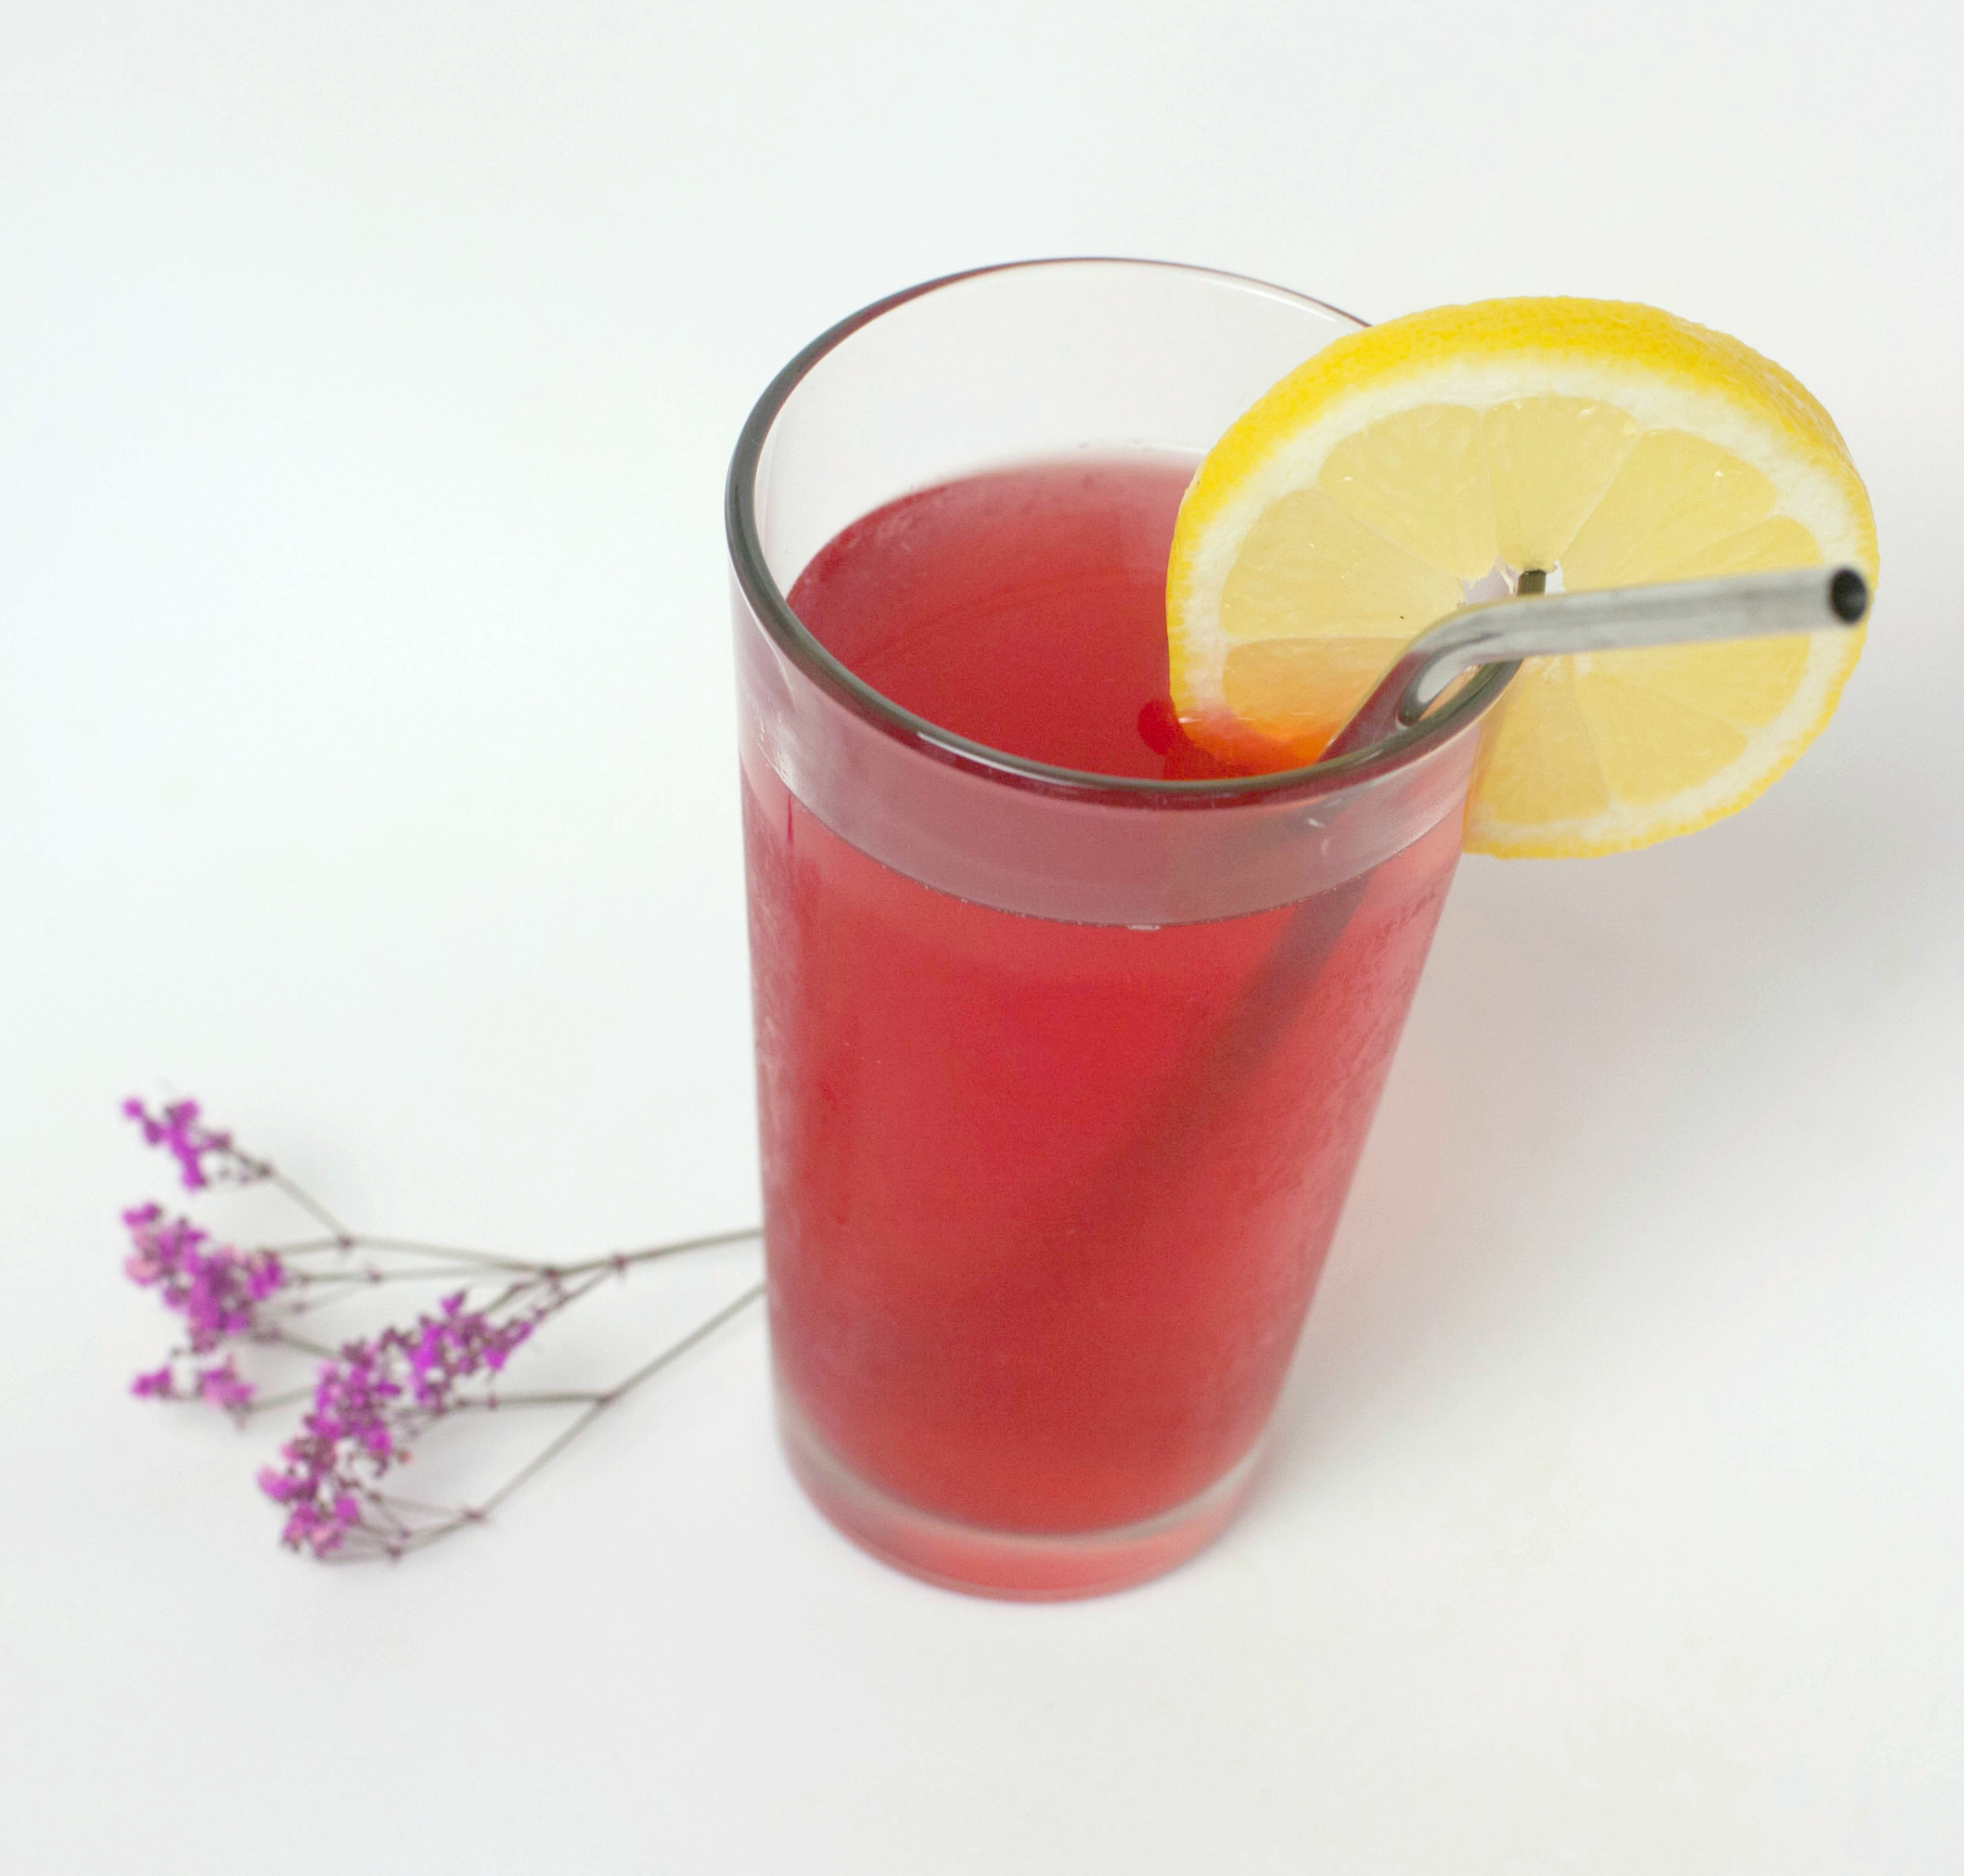 Produce On Parade - Hibiscus Fruit Punch, An Antioxidant Powerhouse